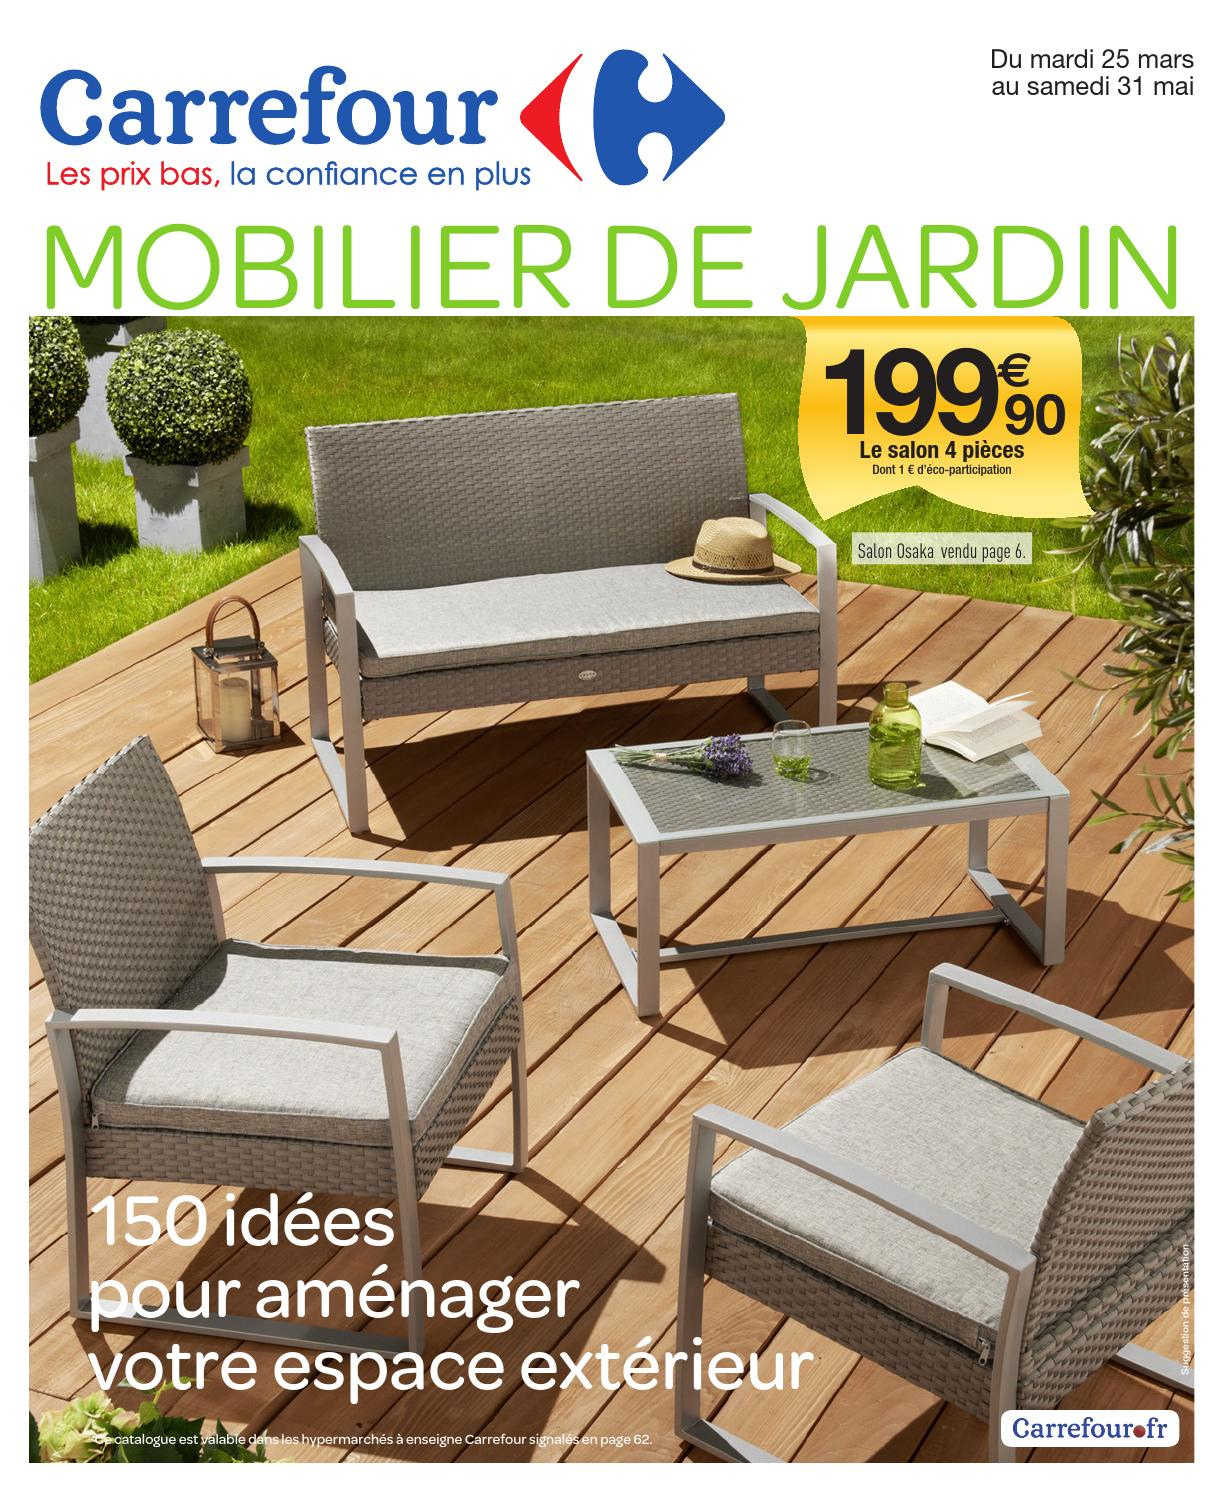 Awesome Chaise De Jardin Weldom Images - ansomone.us - ansomone.us